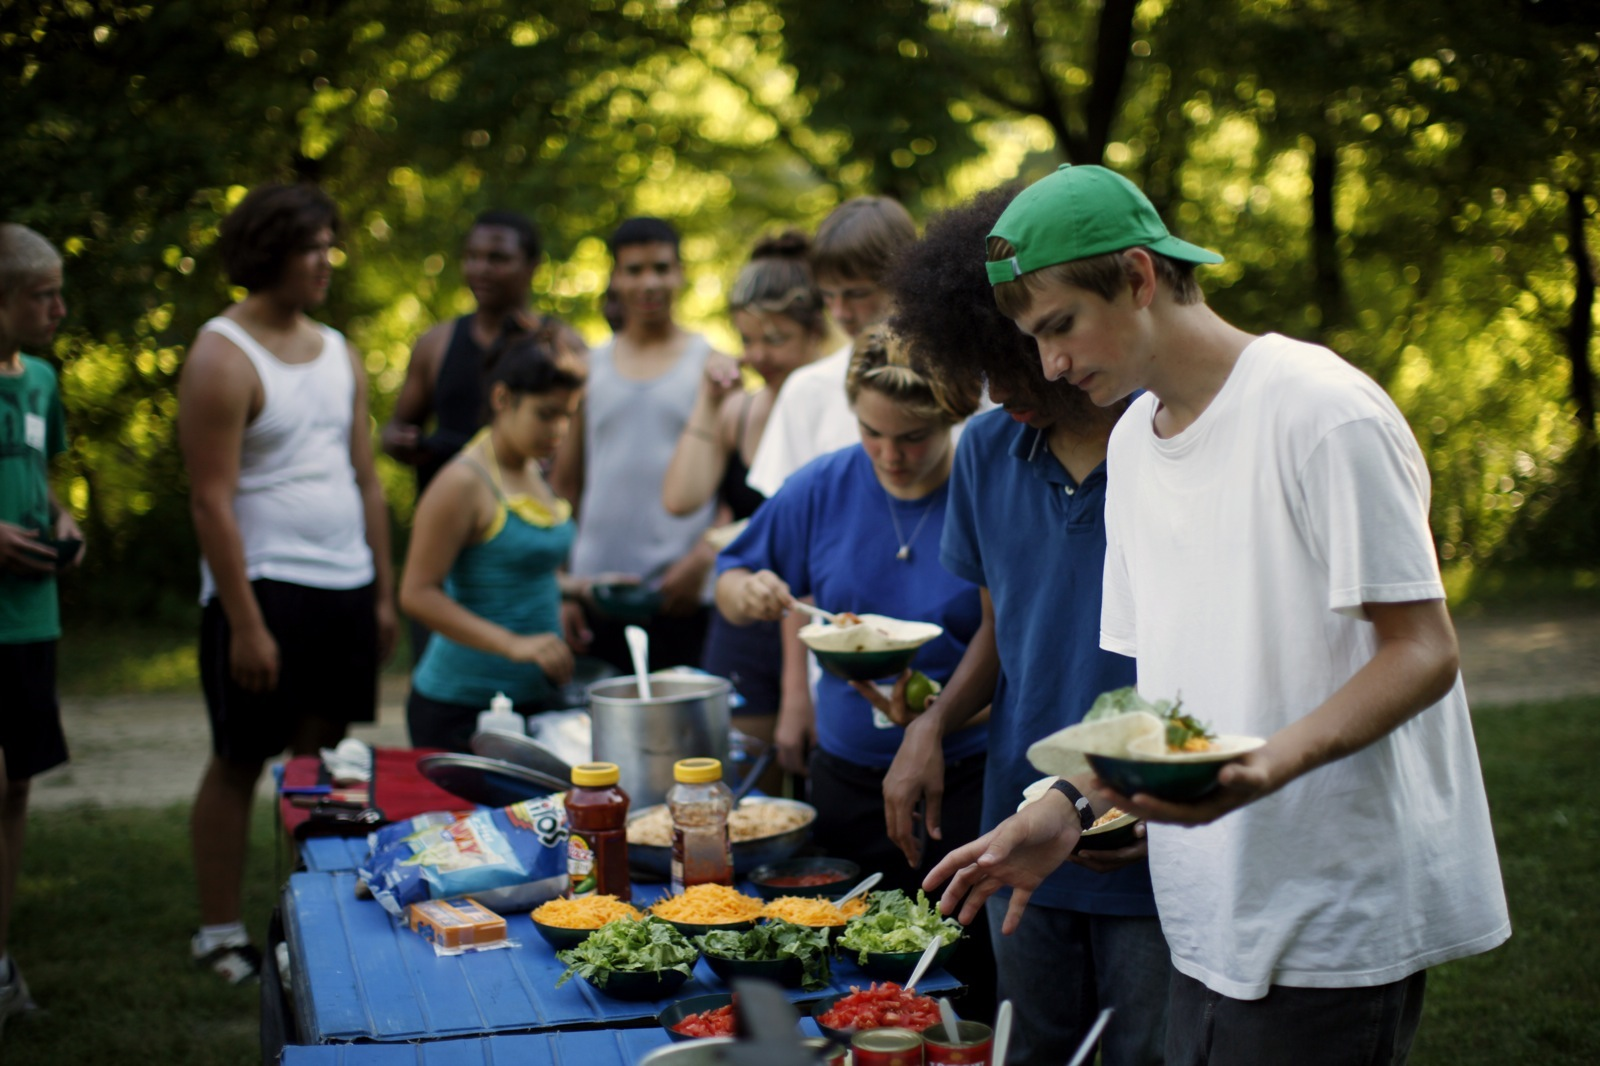 At their campsite, a group of young people lines up at a buffet of burrito ingredients to put together their dinner.